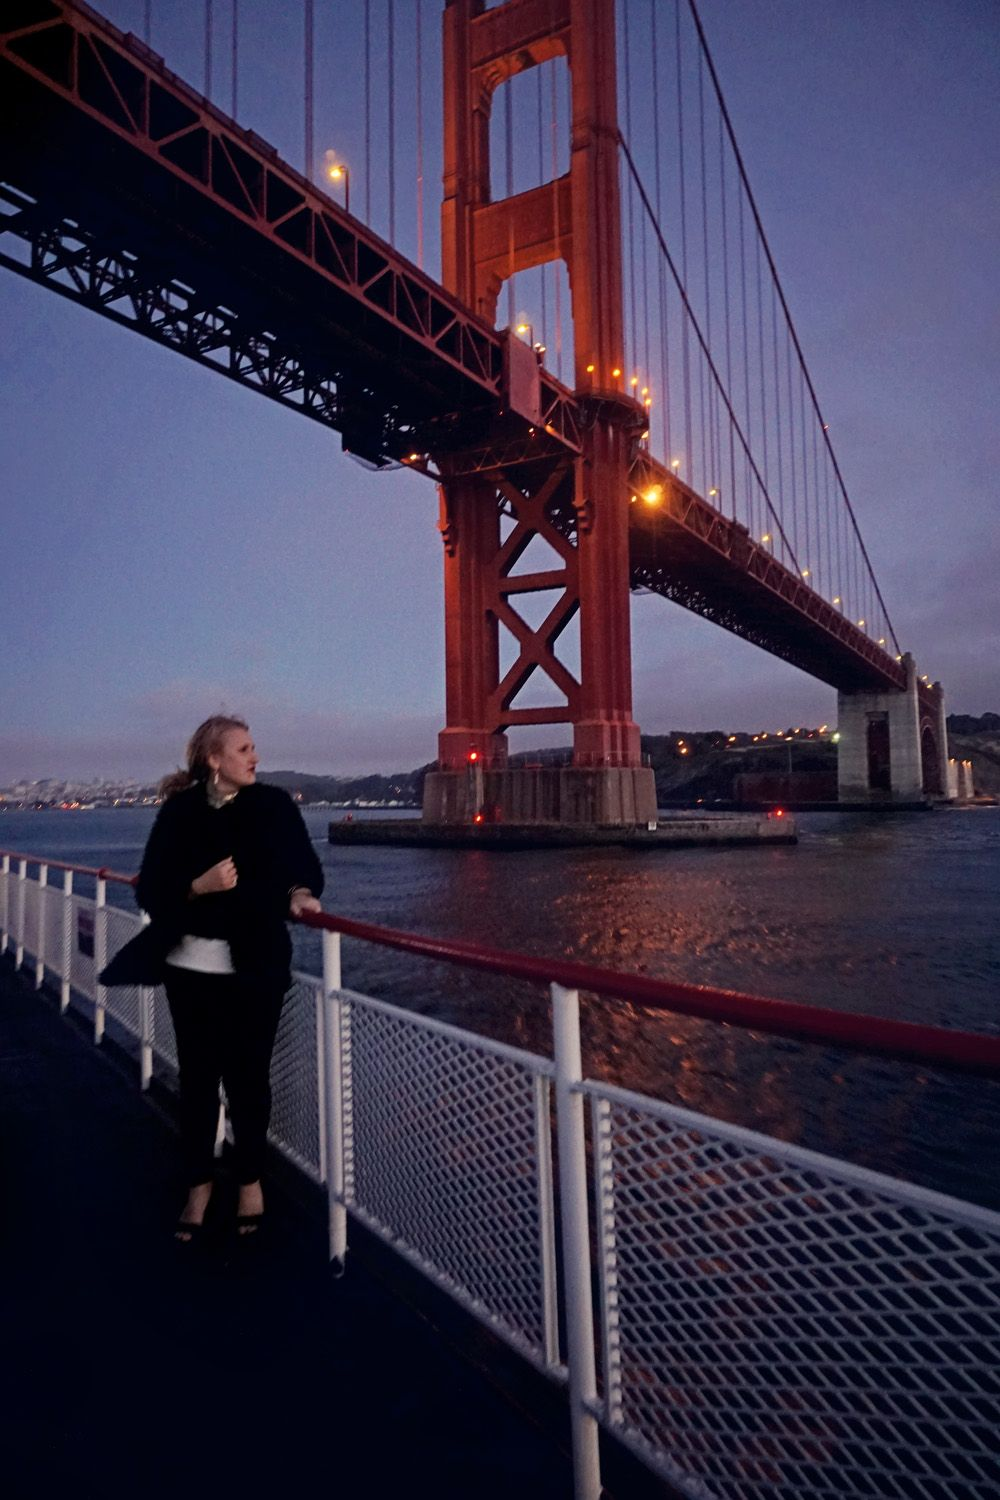 Sunset Cruise in San Francisco. Bundle up in sweaters while on a boat in the…